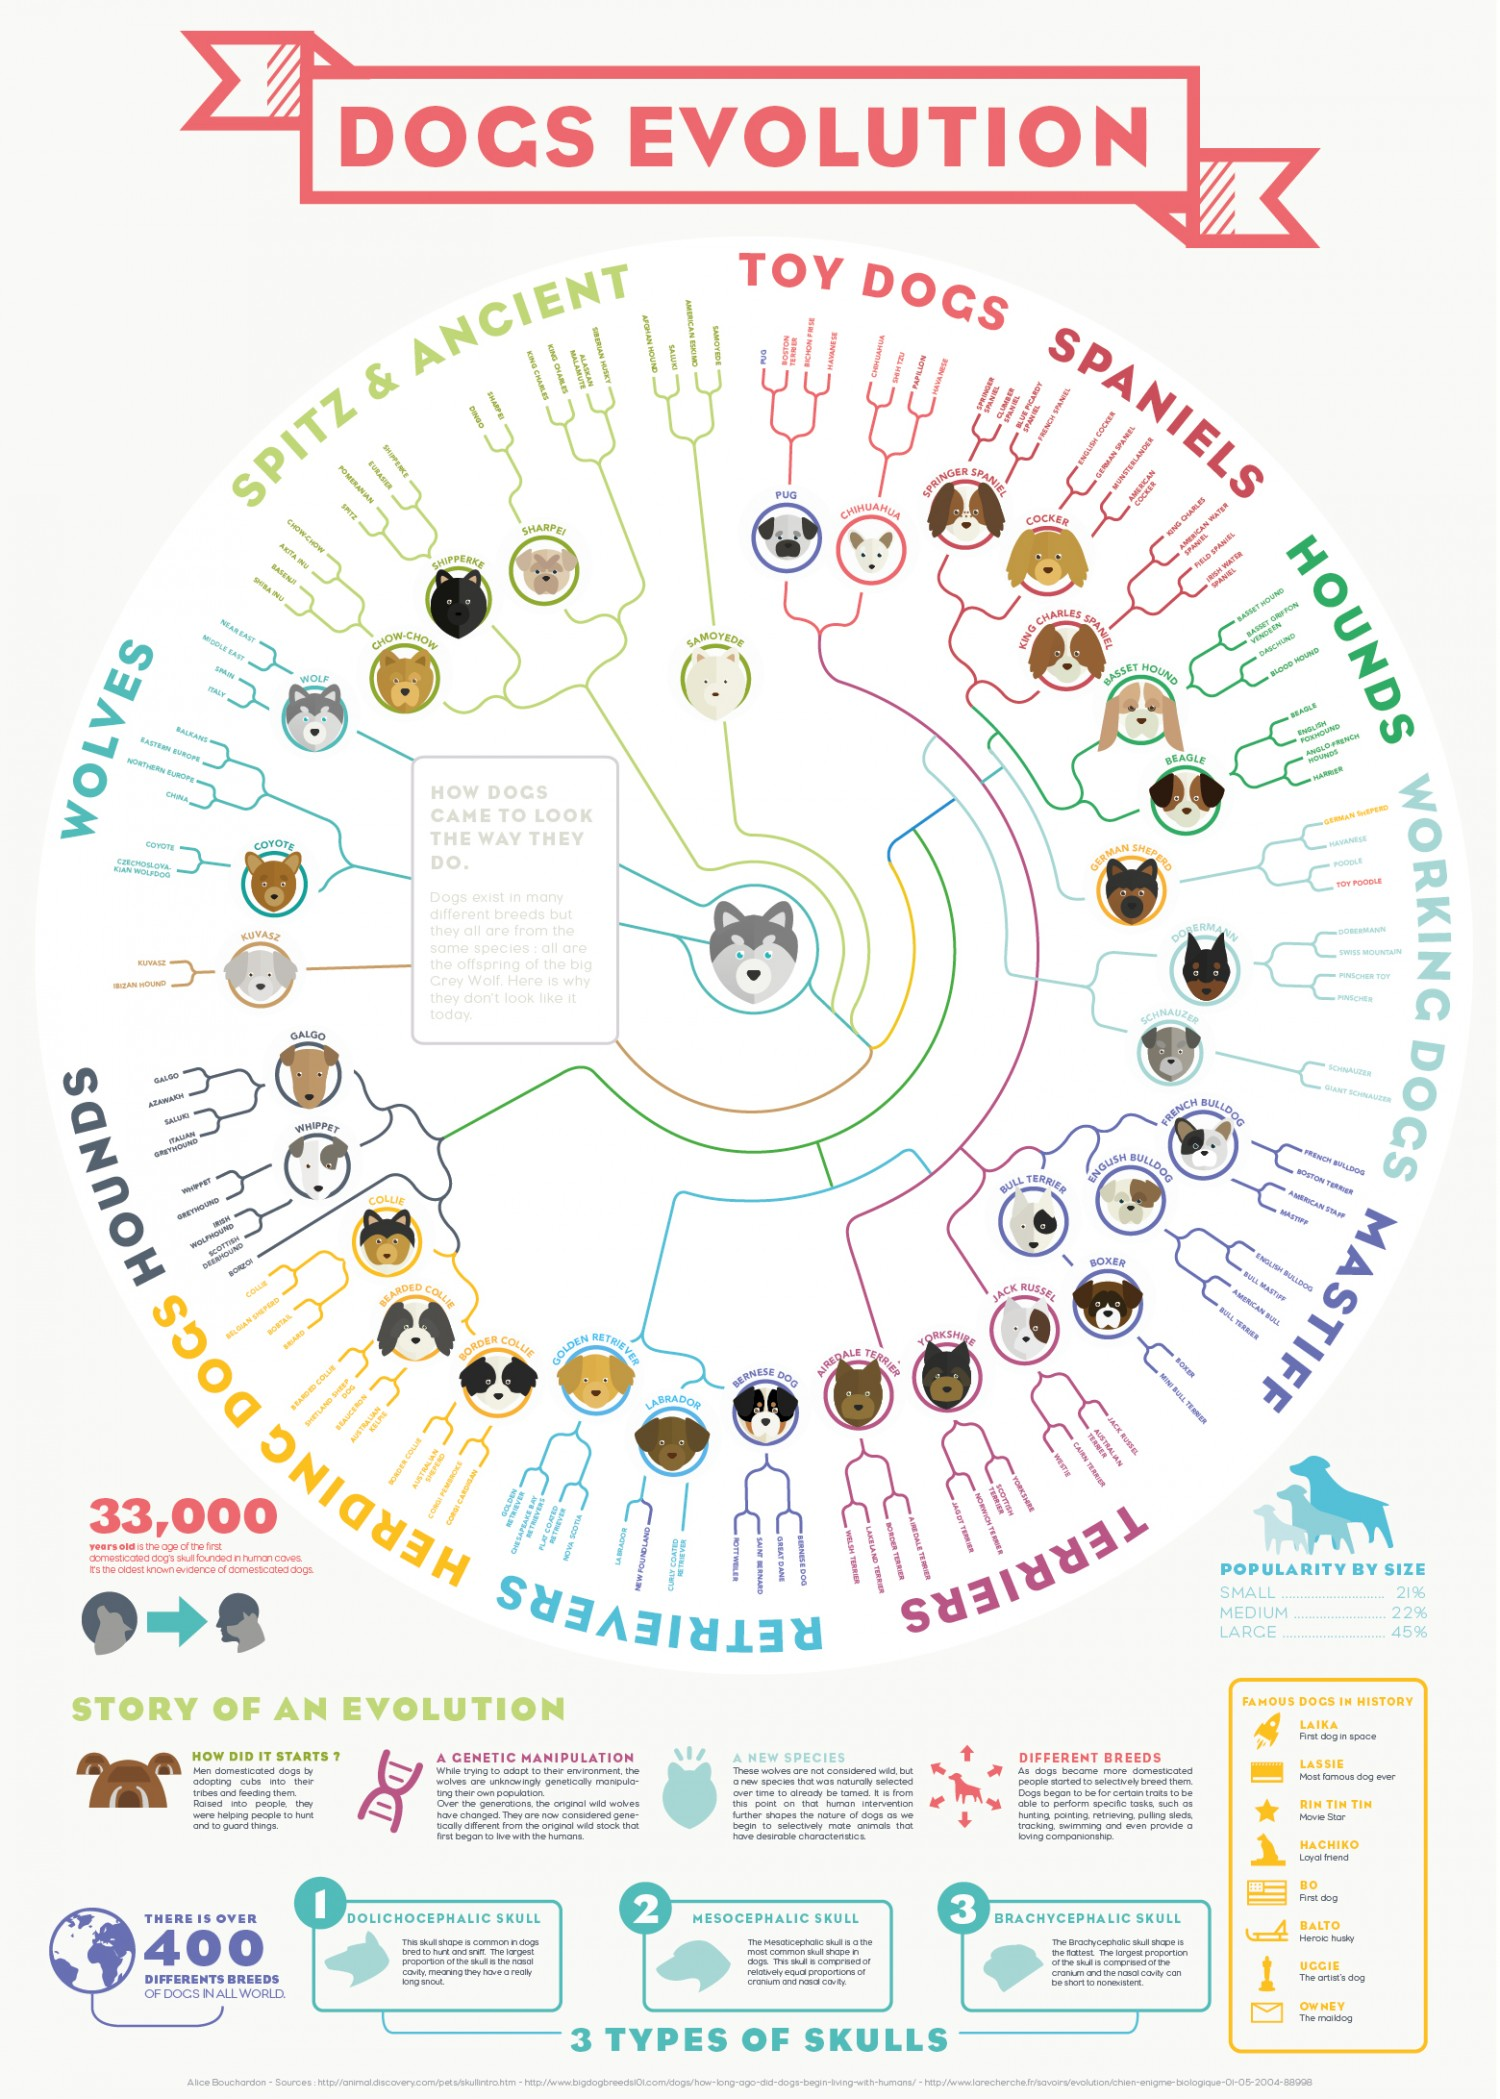 history and evolution of dogs He ask a researcher involved in the new study, love dalén of the swedish museum of natural history in stockholm, what the new date means for how the bond between humans and dogs formed.